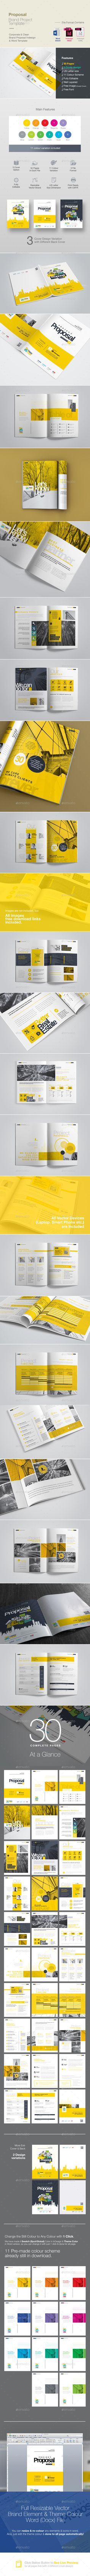 30 pages professional Clean & Creative Brand Project Proposal is ideal for multipurpose use, quality & clean design, professional and modern project proposal template